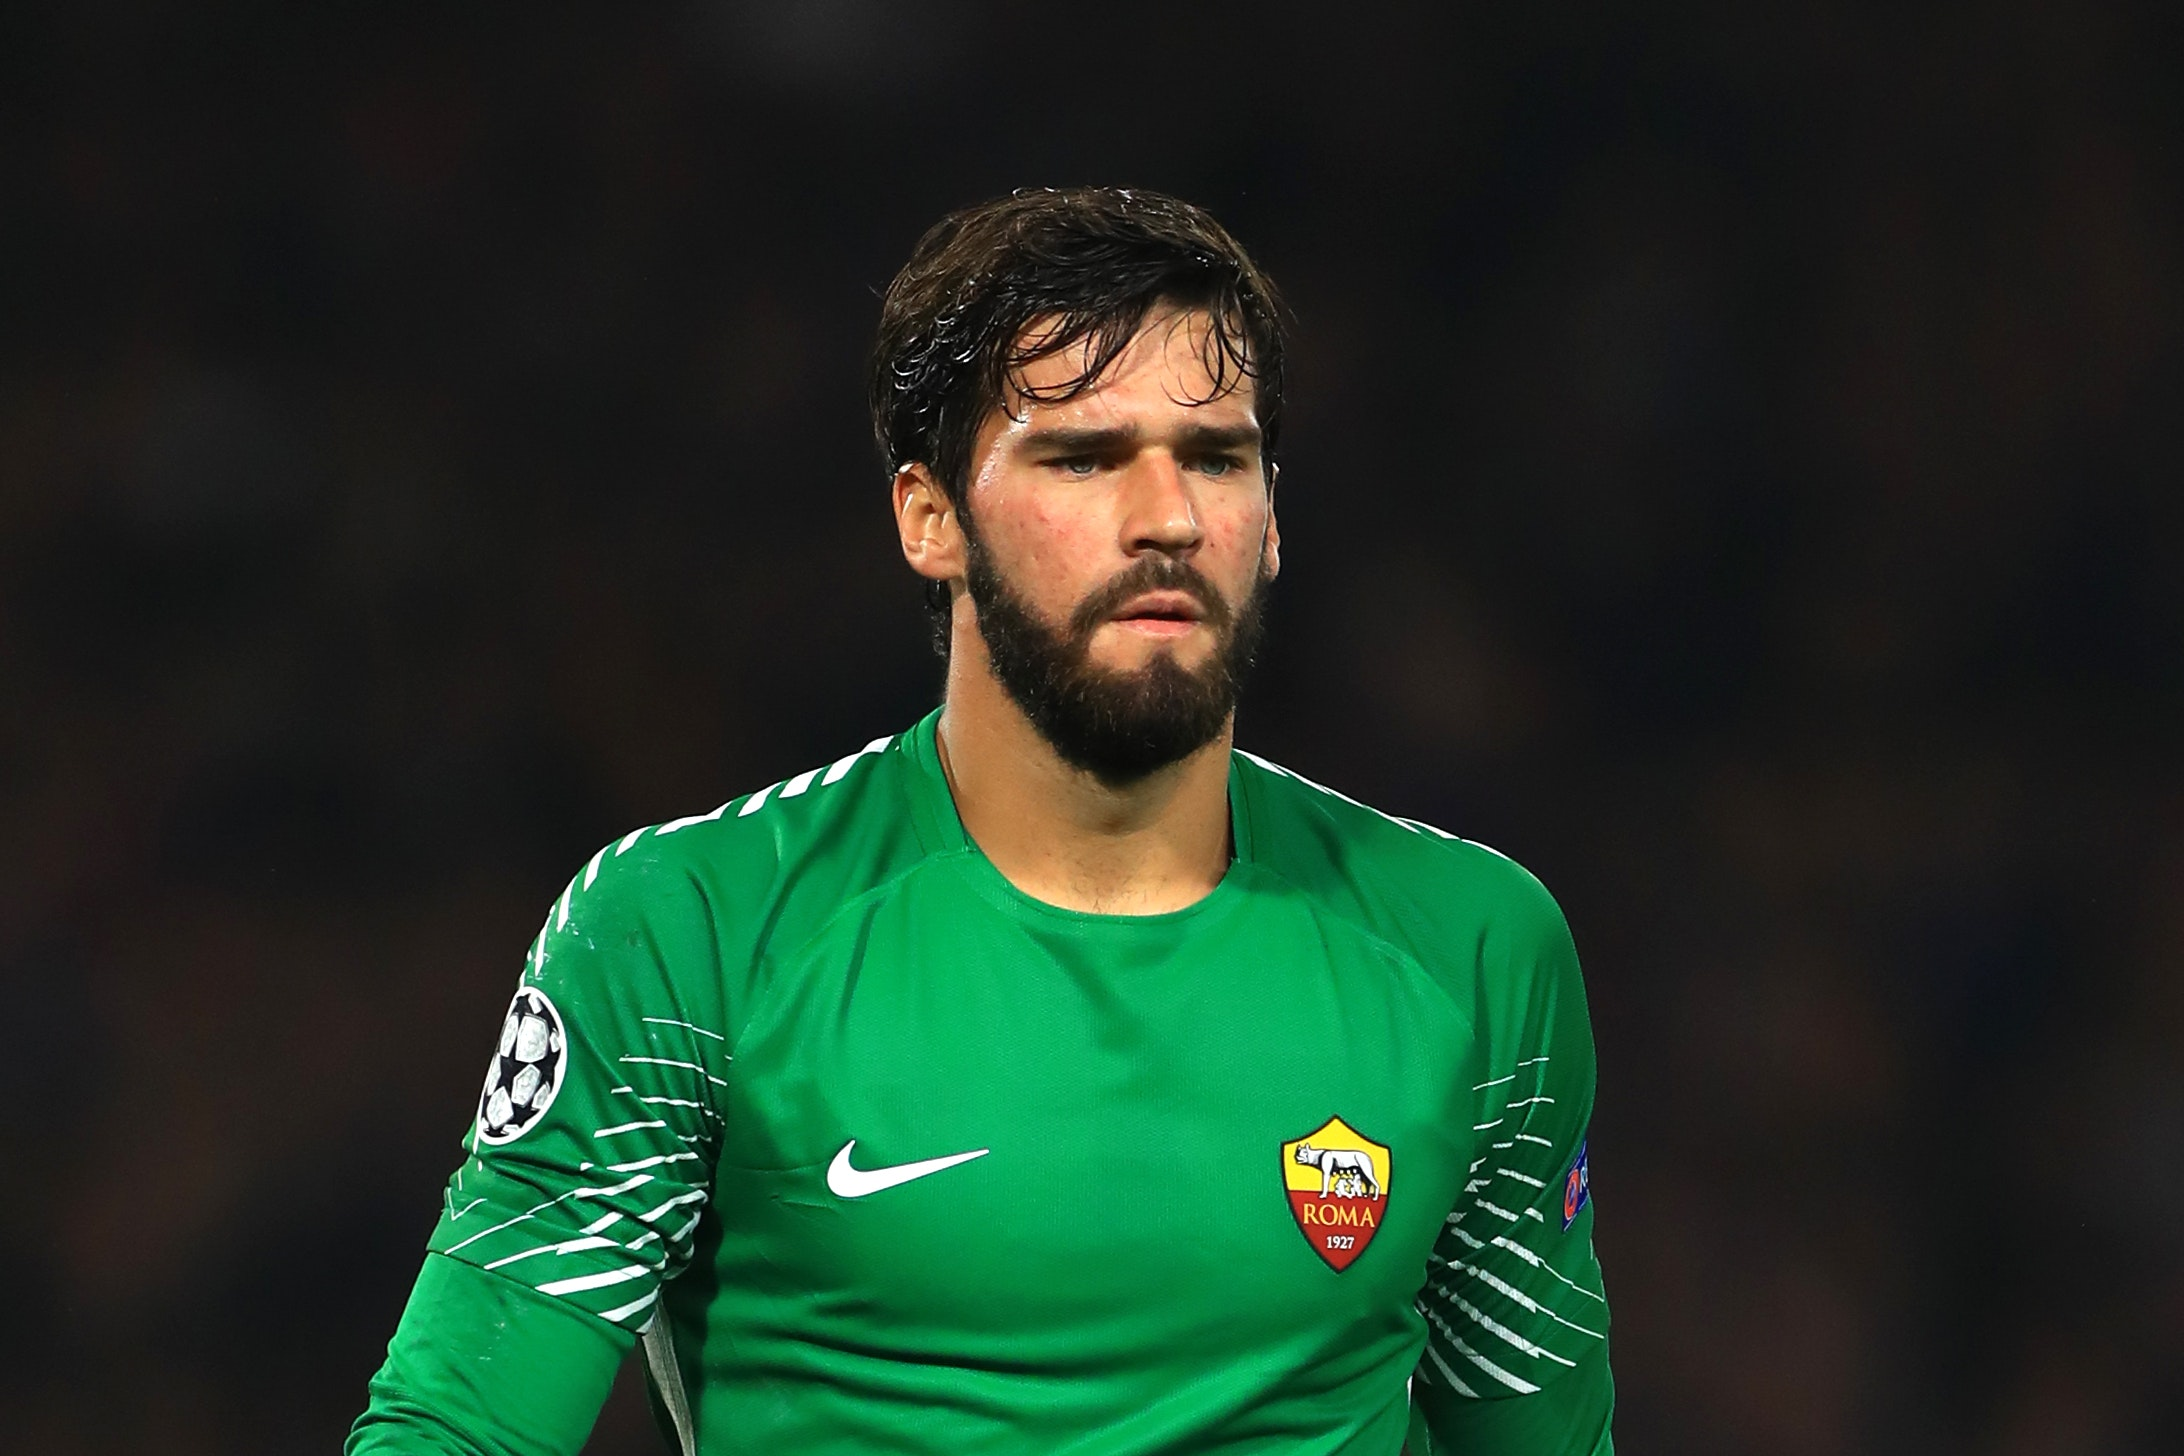 Jurgen Klopp reveals why he chose Alisson over Jan Oblak